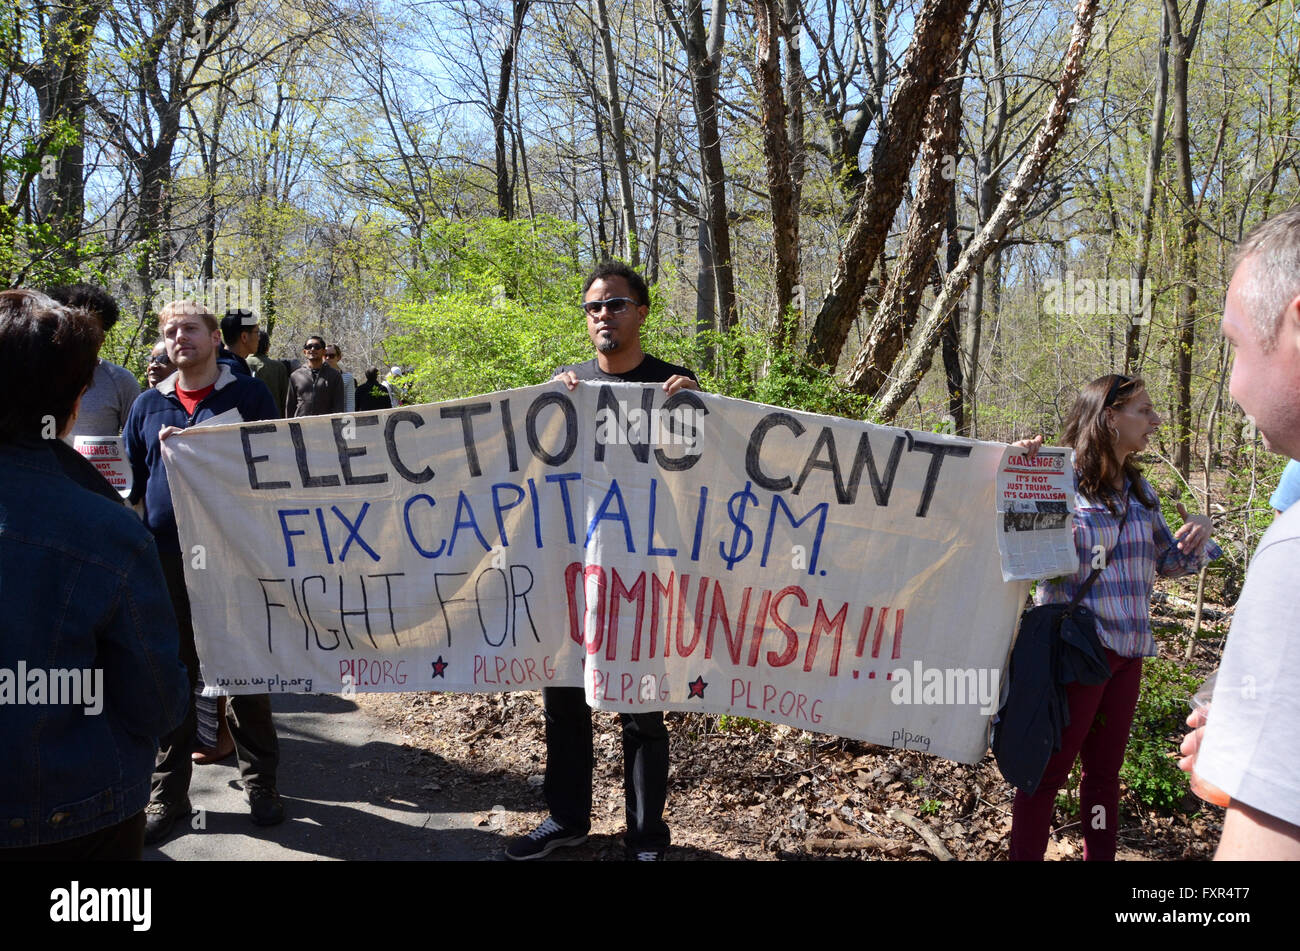 Brooklyn, New York, USA. 17th April, 2016. communists with banner Bernie Sanders Prospect Park Brooklyn april 17th - Stock Image